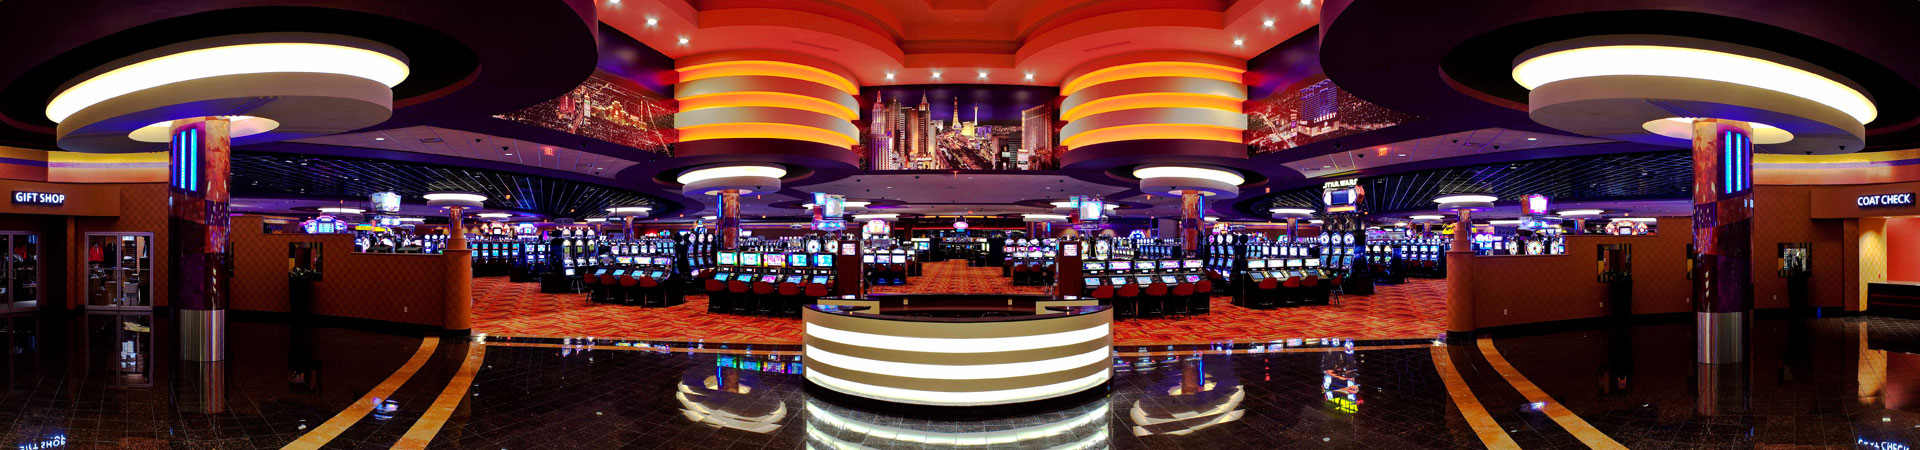 meadows-casino-led-lighting-fixtures-led-solutions-high